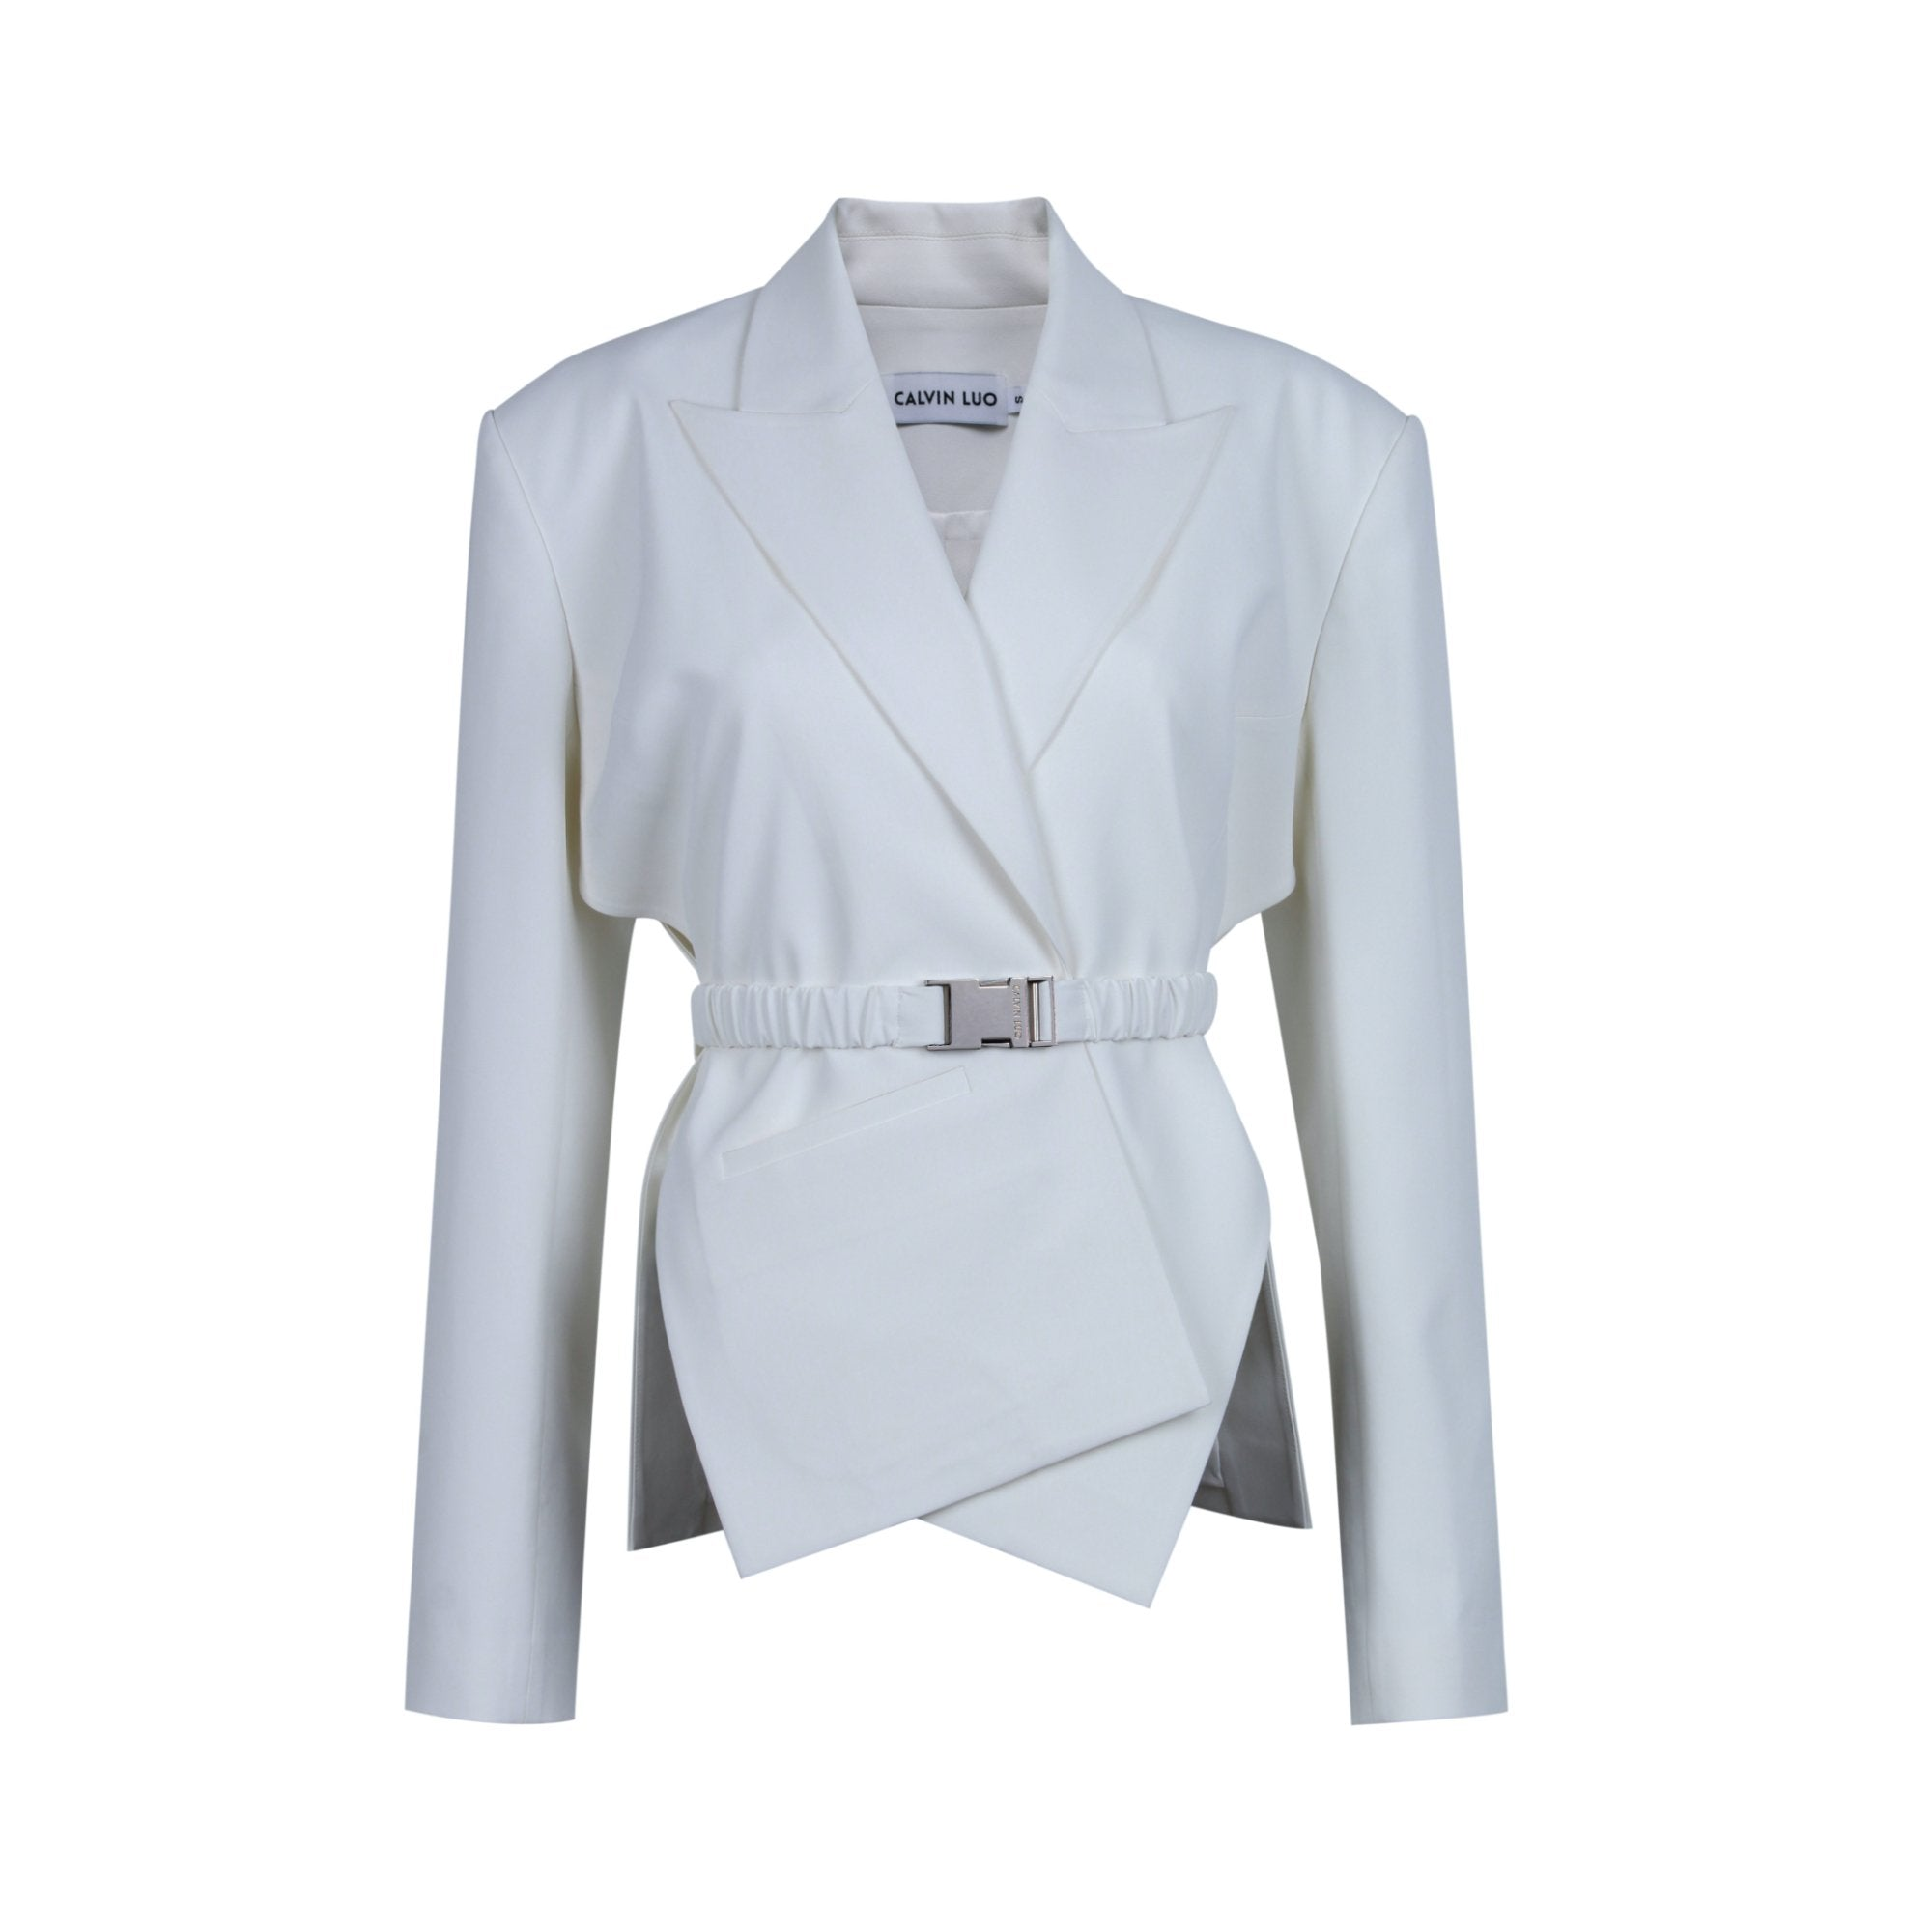 CALVIN LUO White Cross Placket Jacket | MADA IN CHINA